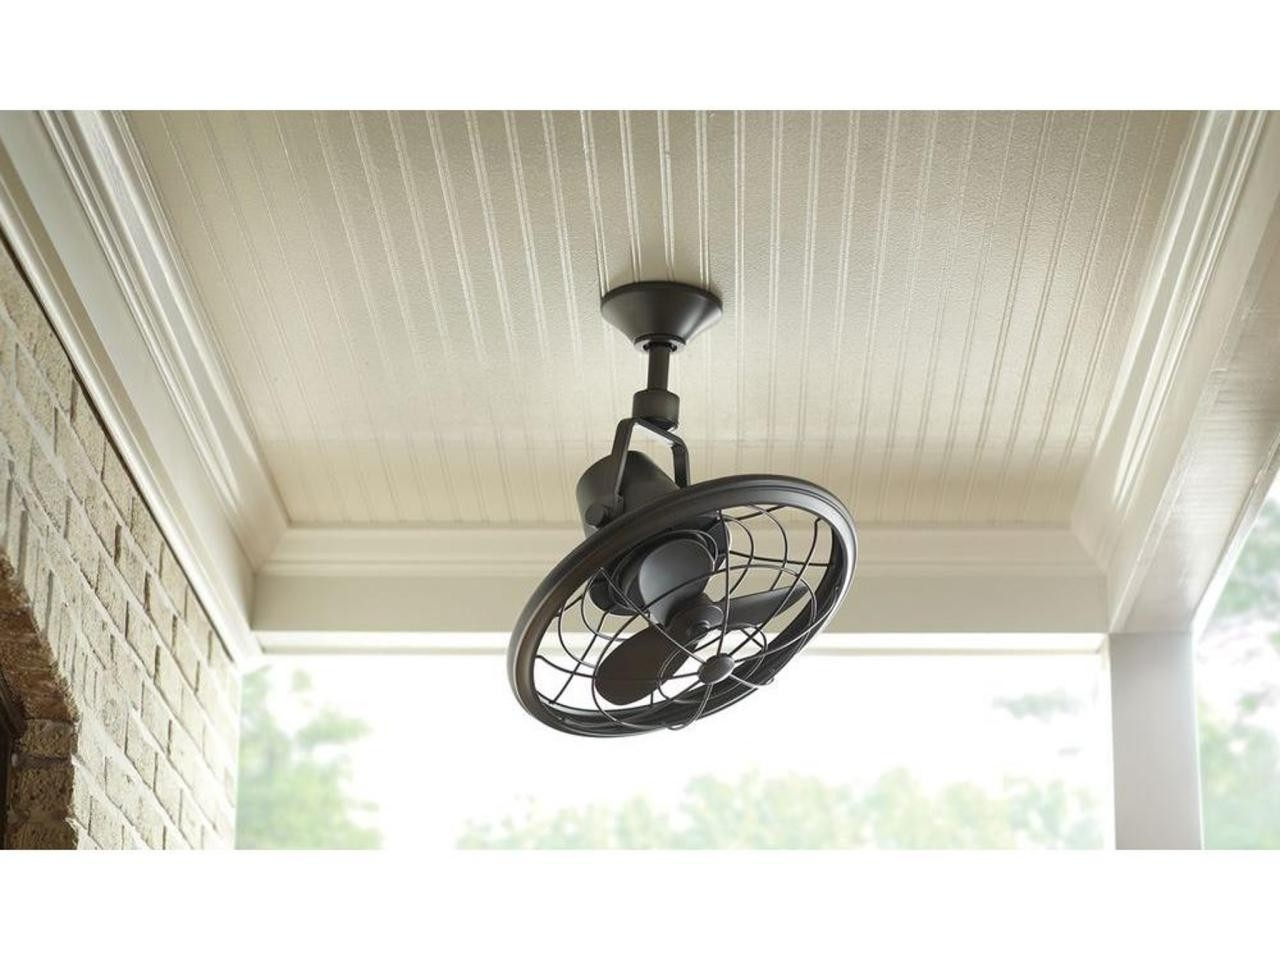 Trendy Vintage Look Outdoor Ceiling Fans For White Porch Ceiling With Oscillating Ceiling Fan A Vintage Style (Gallery 13 of 20)